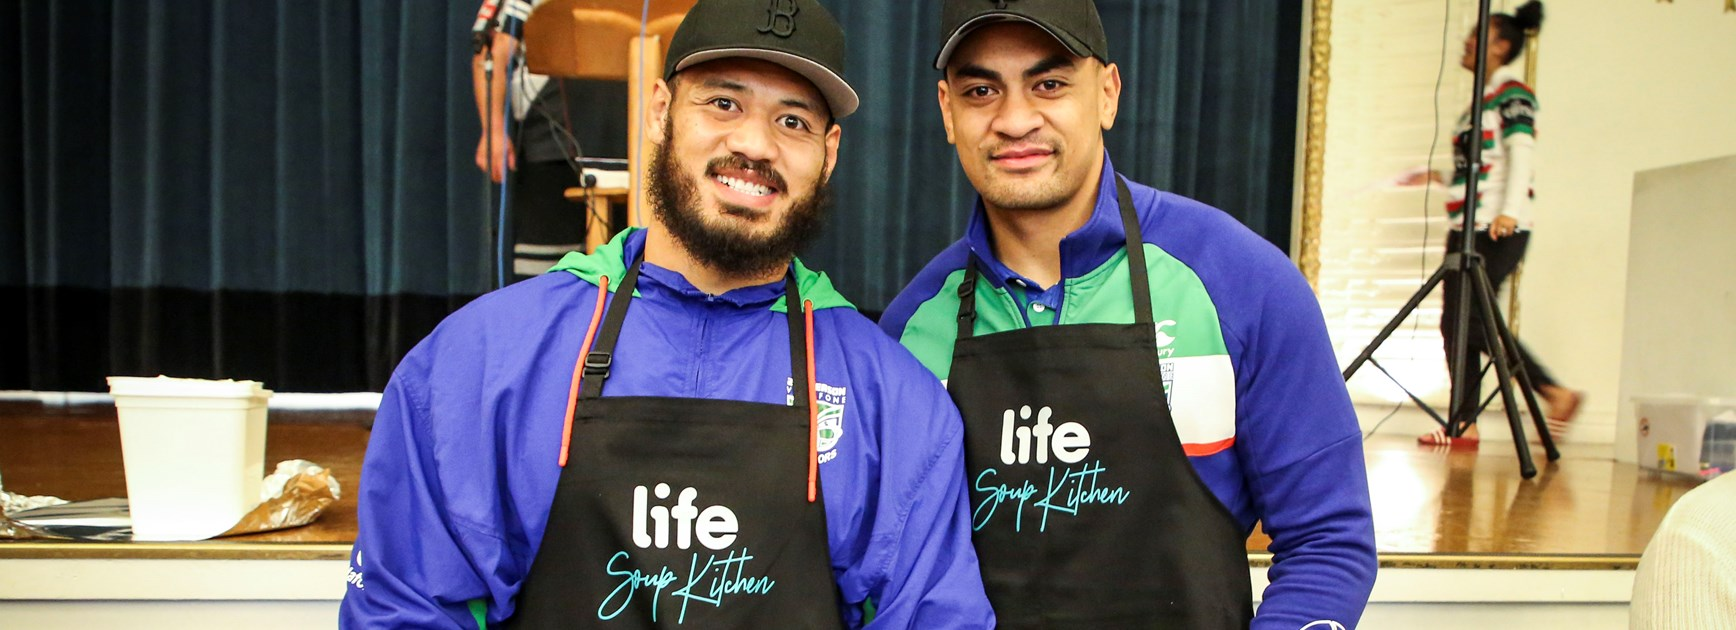 The Warriors lend a hand at the LIFE soup kitchen.